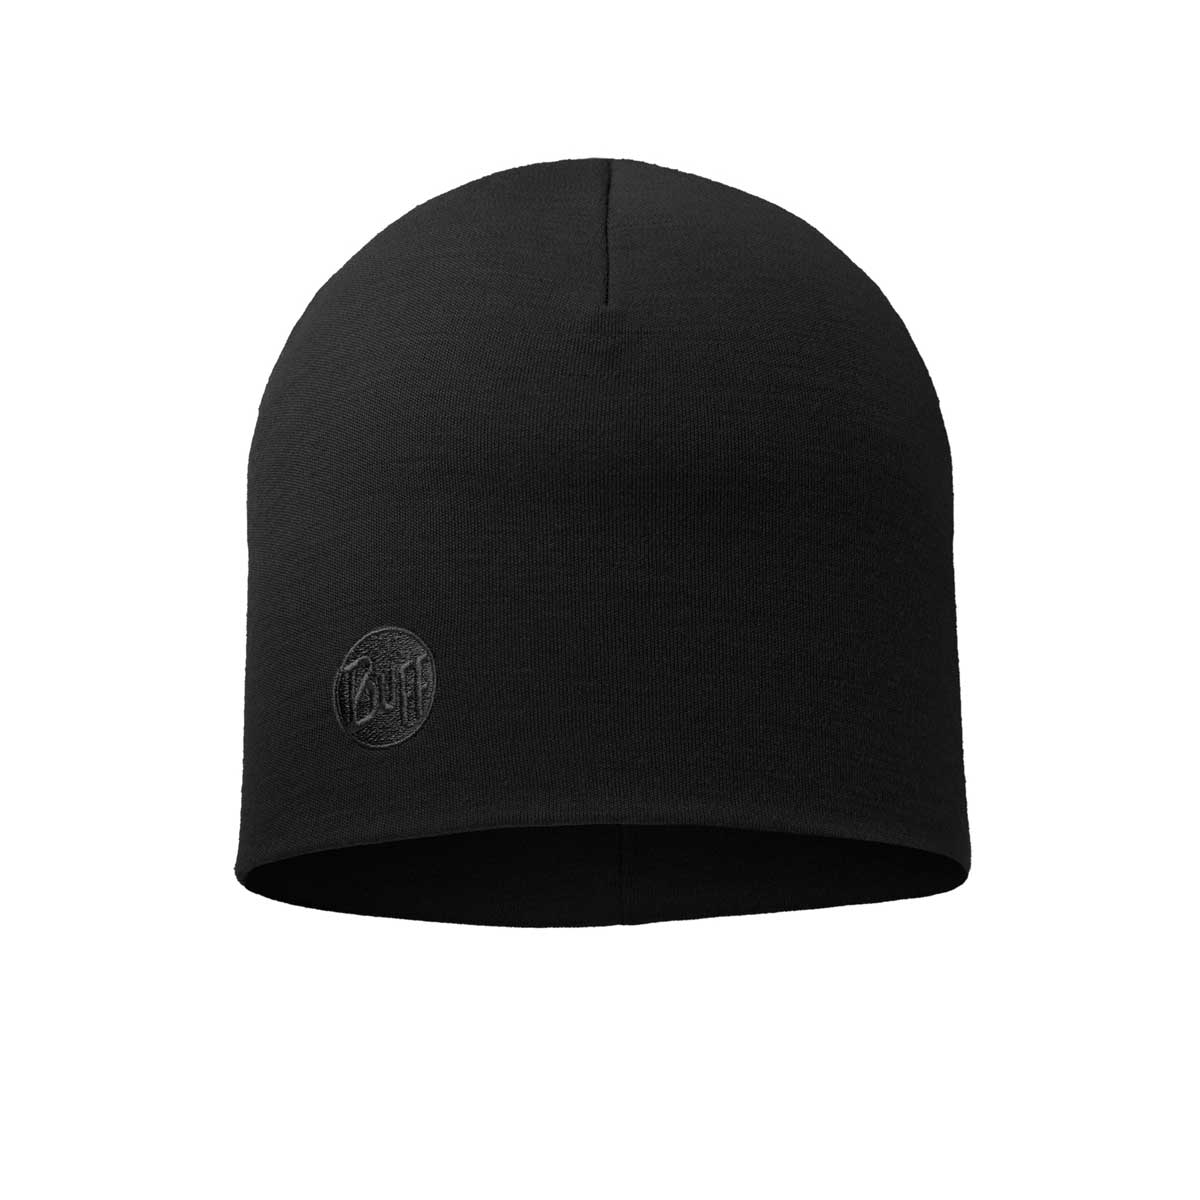 Buff Unisex Lightweight Merino Wool Hat in Black